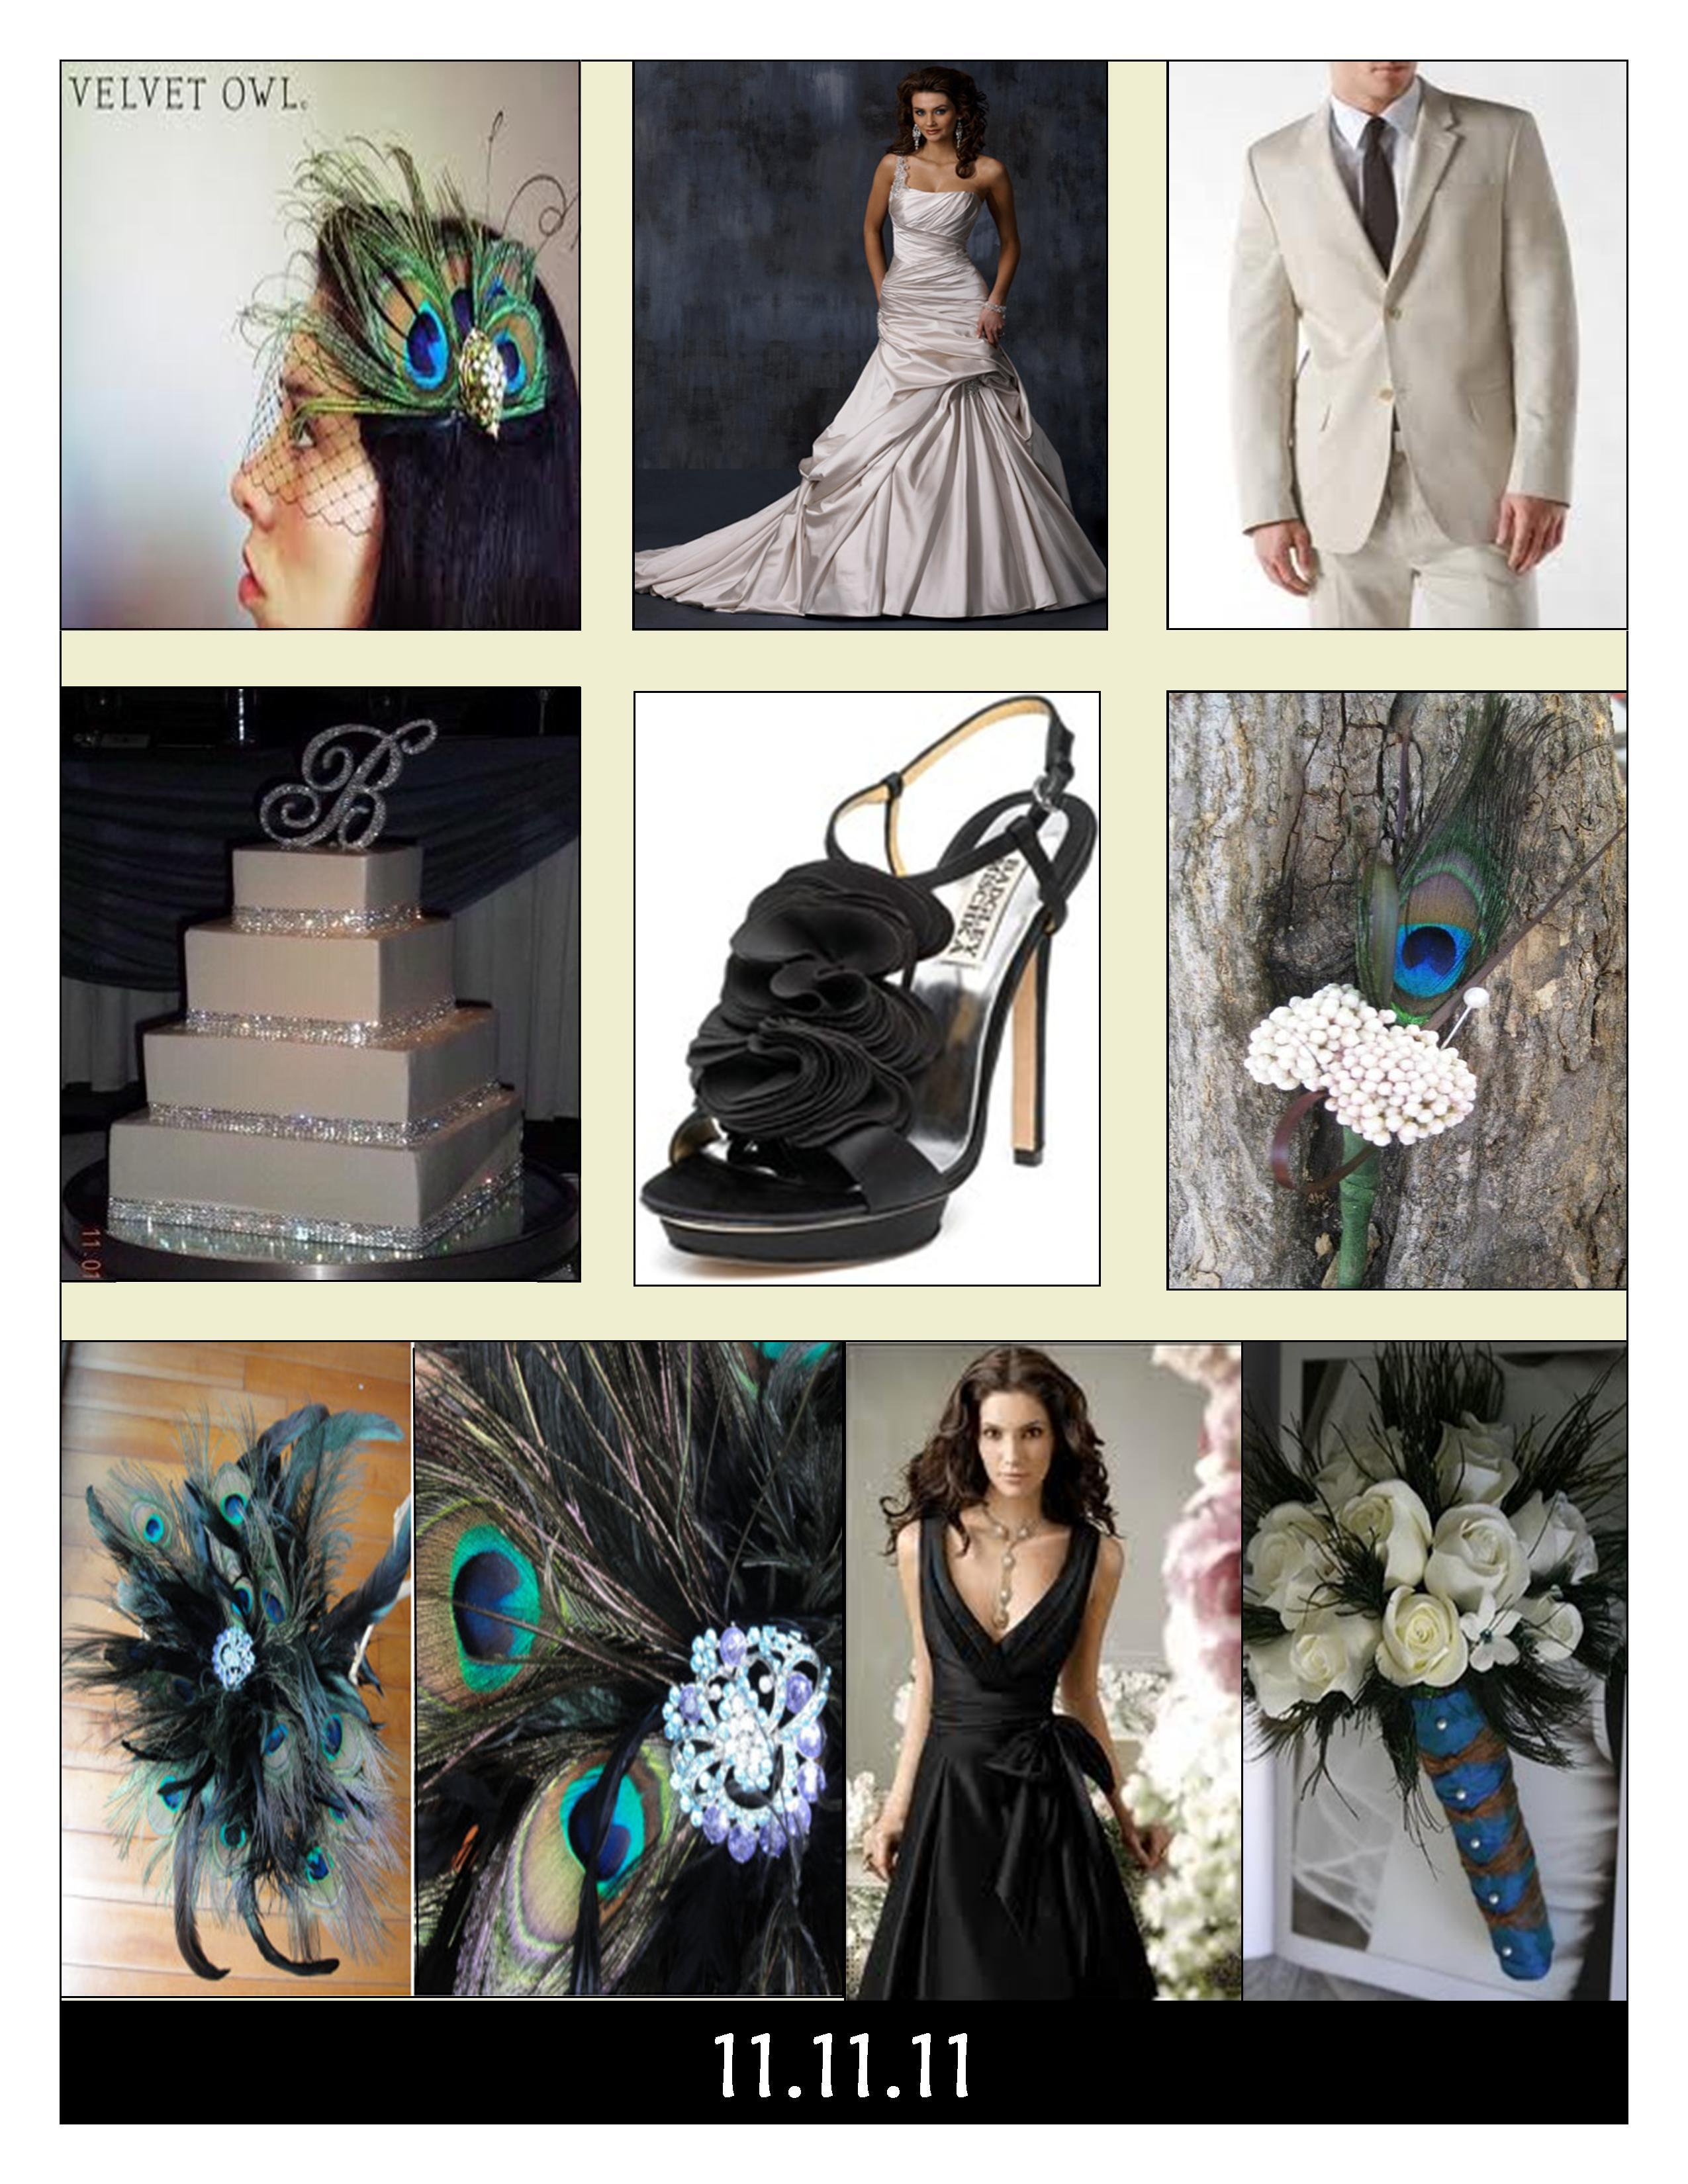 Beauty, Inspiration, Flowers & Decor, Jewelry, Bridesmaids, Bridesmaids Dresses, Wedding Dresses, Shoes, Cakes, Fashion, white, blue, green, brown, black, gold, cake, dress, Feathers, Bridesmaid Bouquets, Centerpieces, Flowers, Centerpiece, Wedding, Hair, Board, Crystal, Swarovski, Inspiration board, Peacock, Flower Wedding Dresses, Feather Wedding Dresses